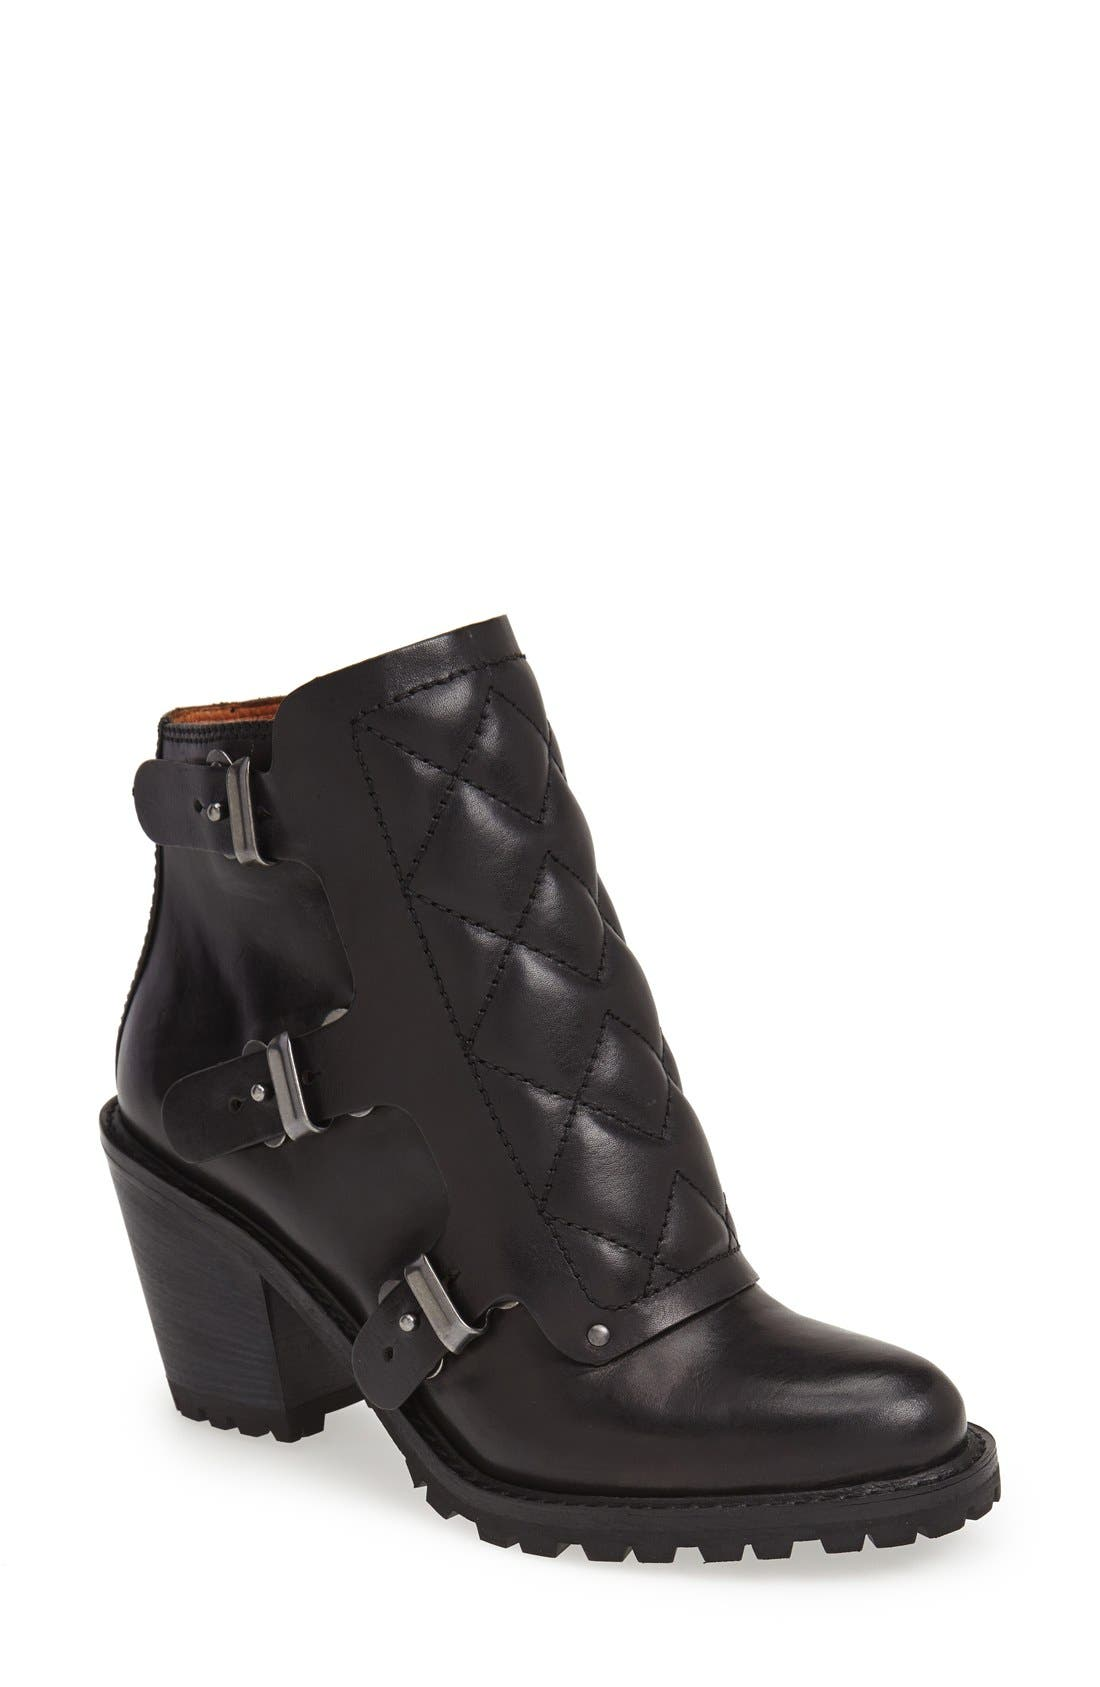 MARC BY MARC JACOBS Ankle Boot,                             Main thumbnail 1, color,                             001